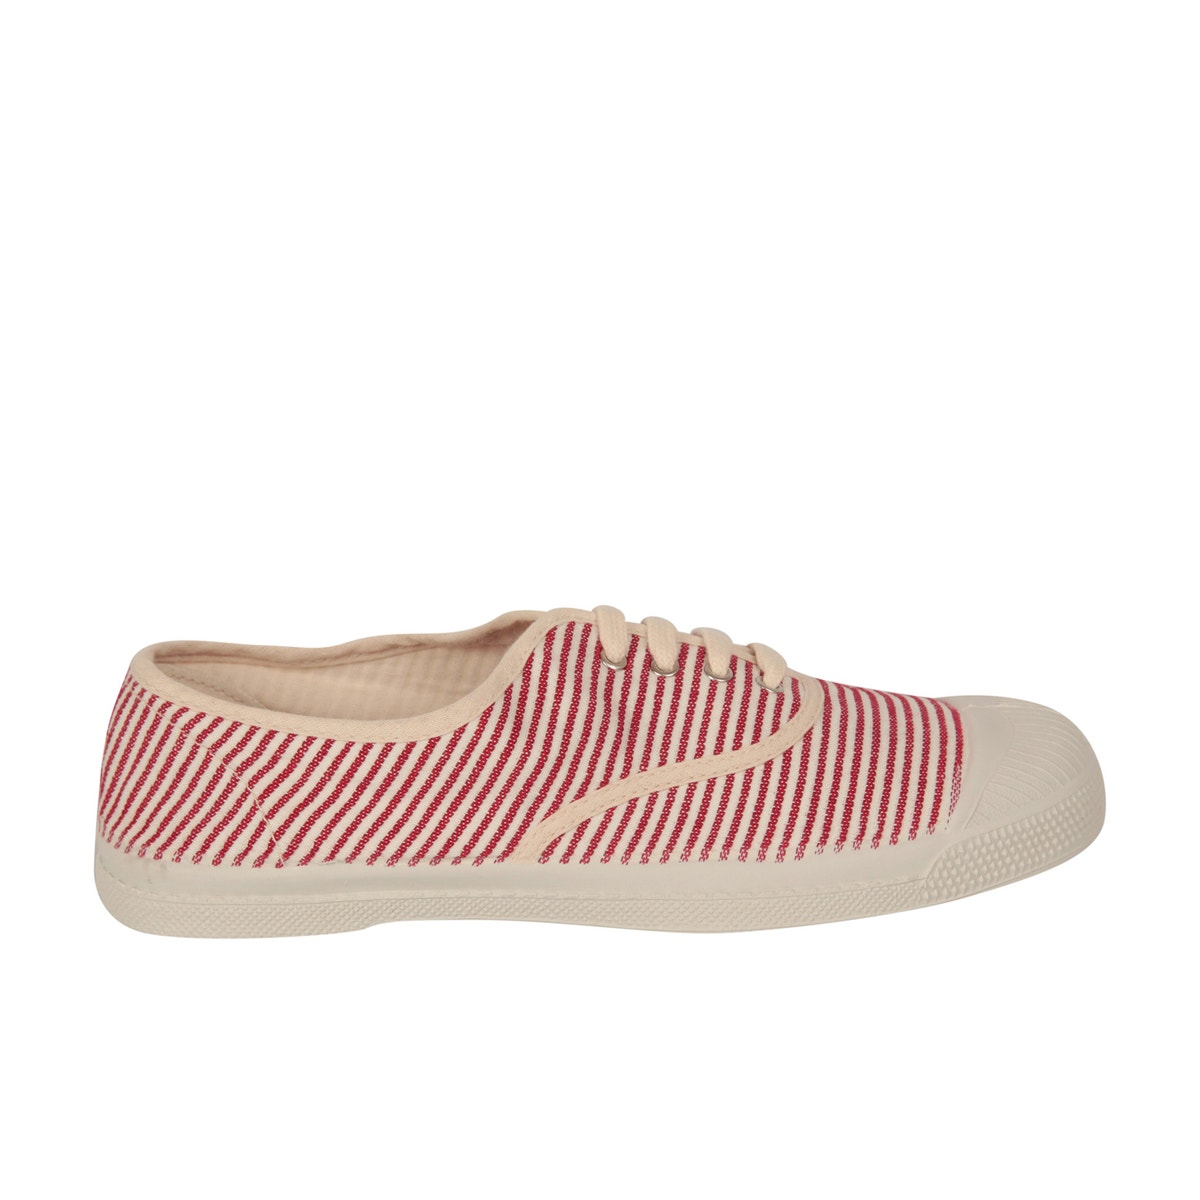 Ben Simon Tennis shoes- Red stripe- ON SALE